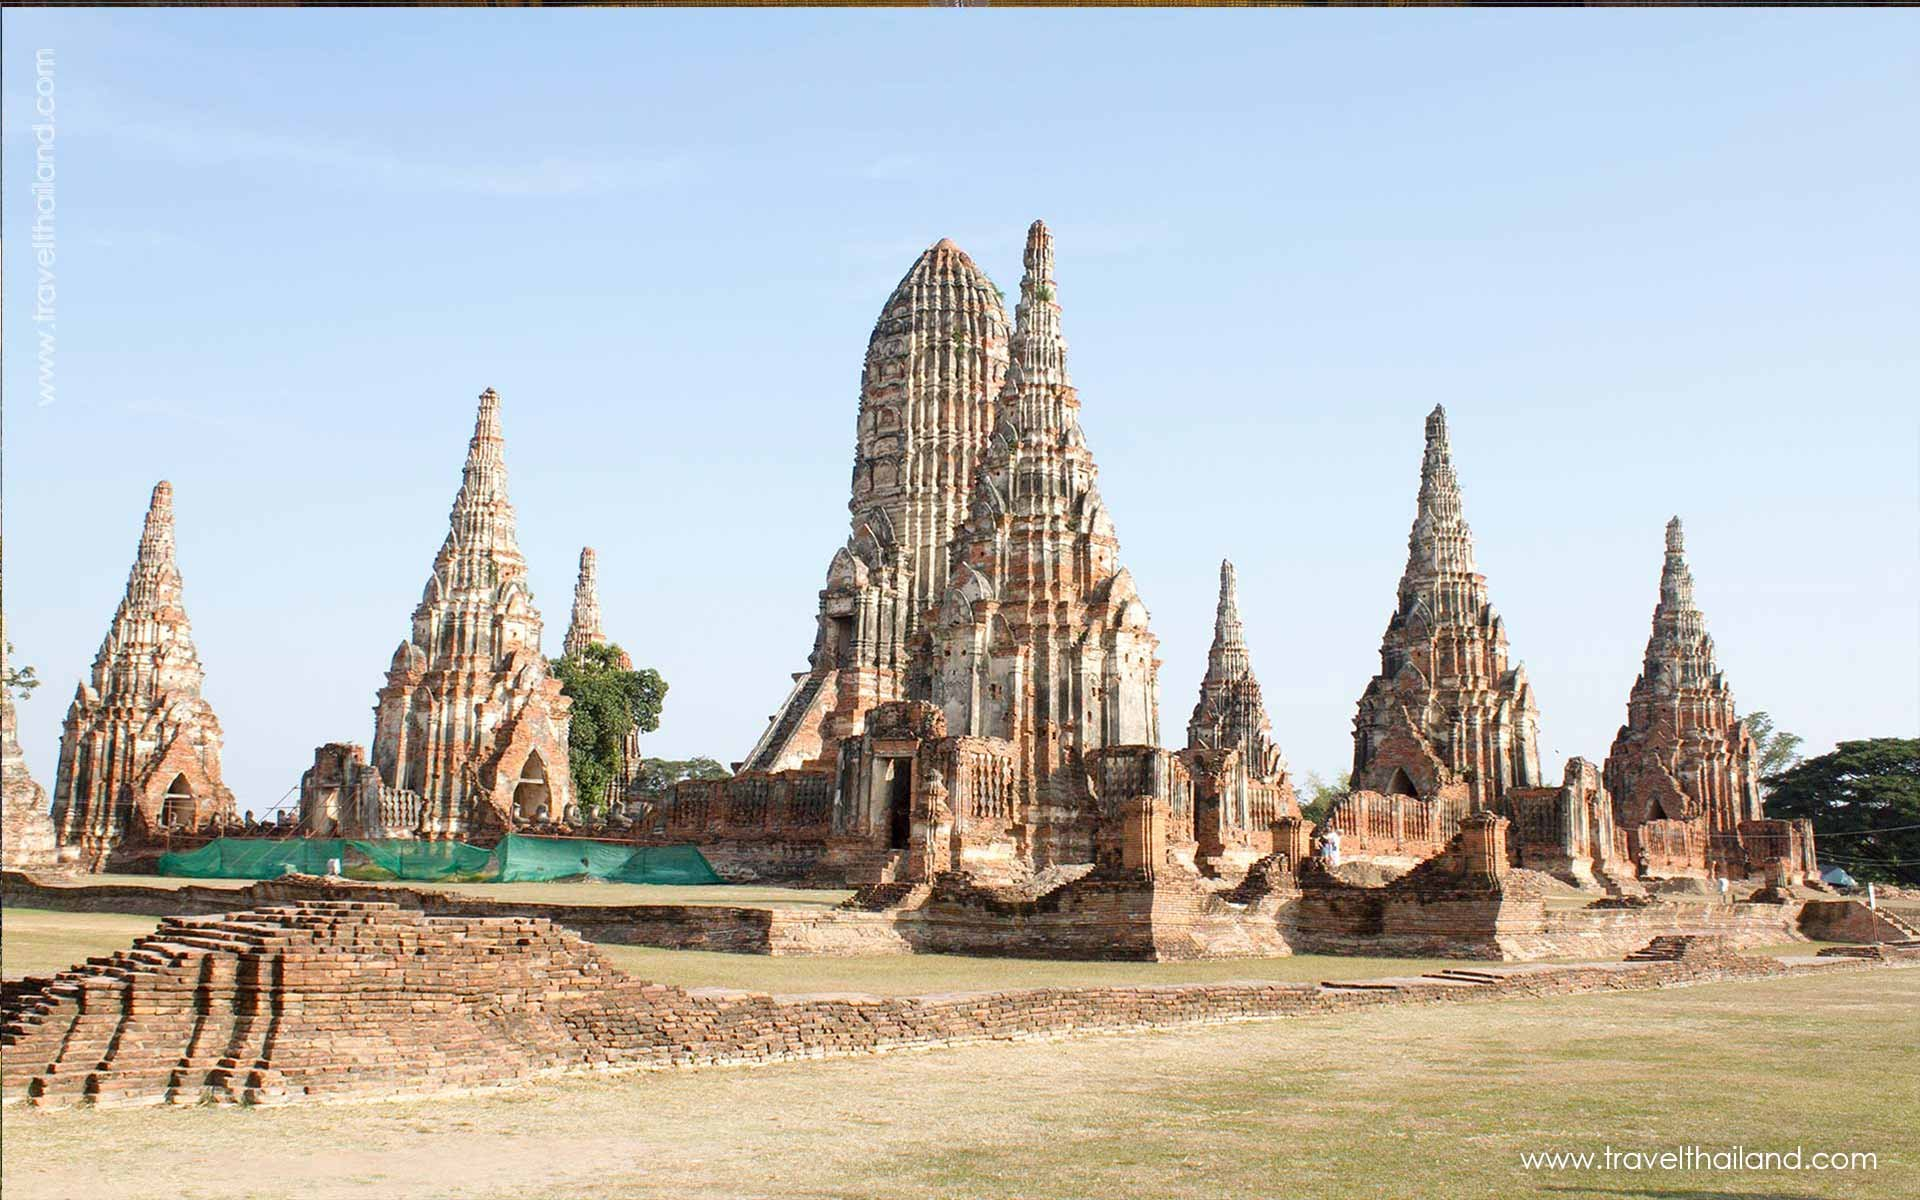 From Siam to Khmer - a Royal Heritage Journey - 9 days